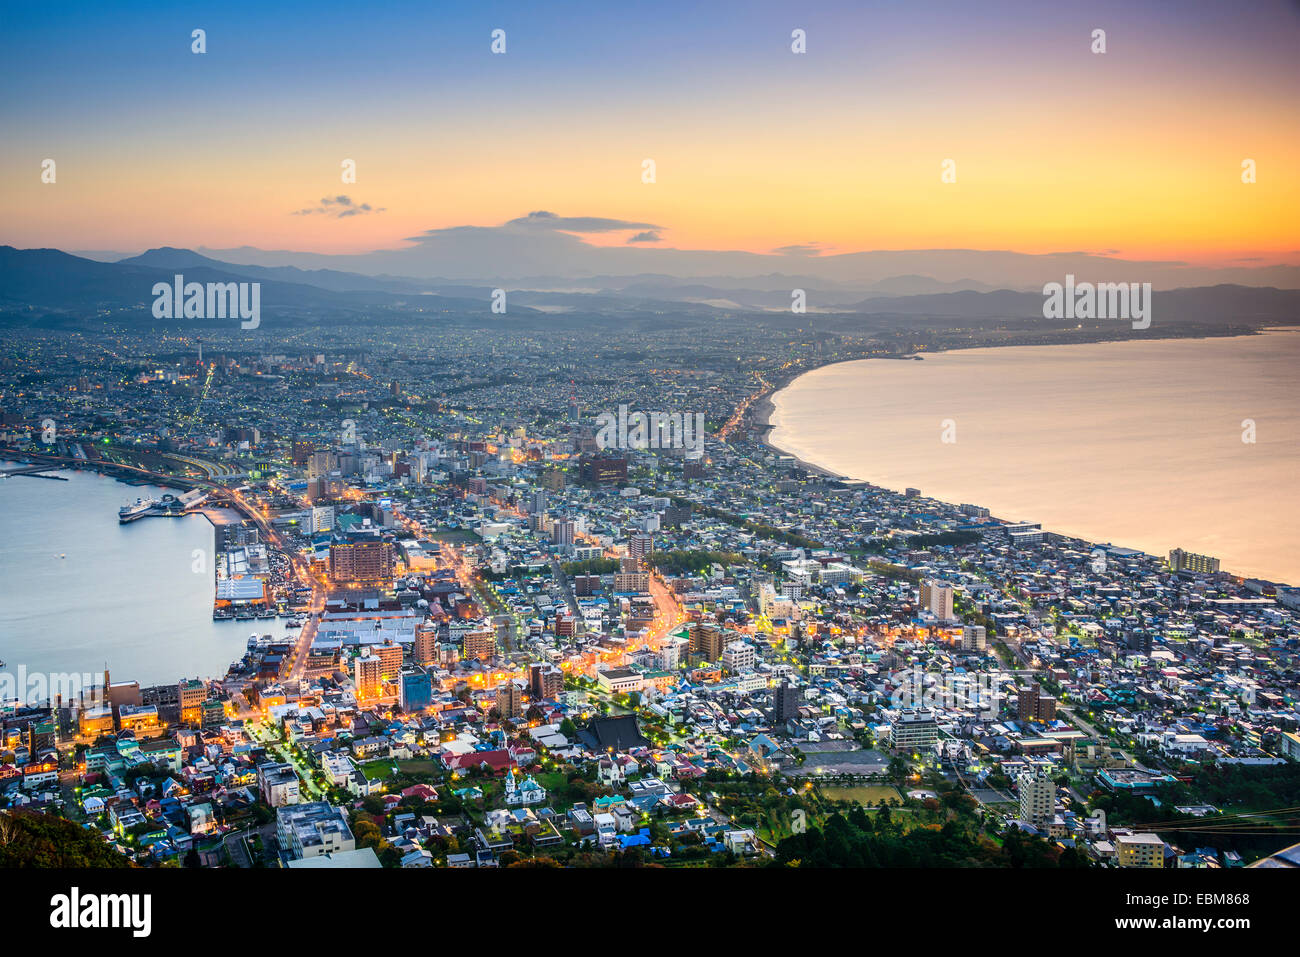 Hakodate, Hokkaido, Japan city skyline from Mt. Hakodate at dawn. The view is considered one of the three best in - Stock Image